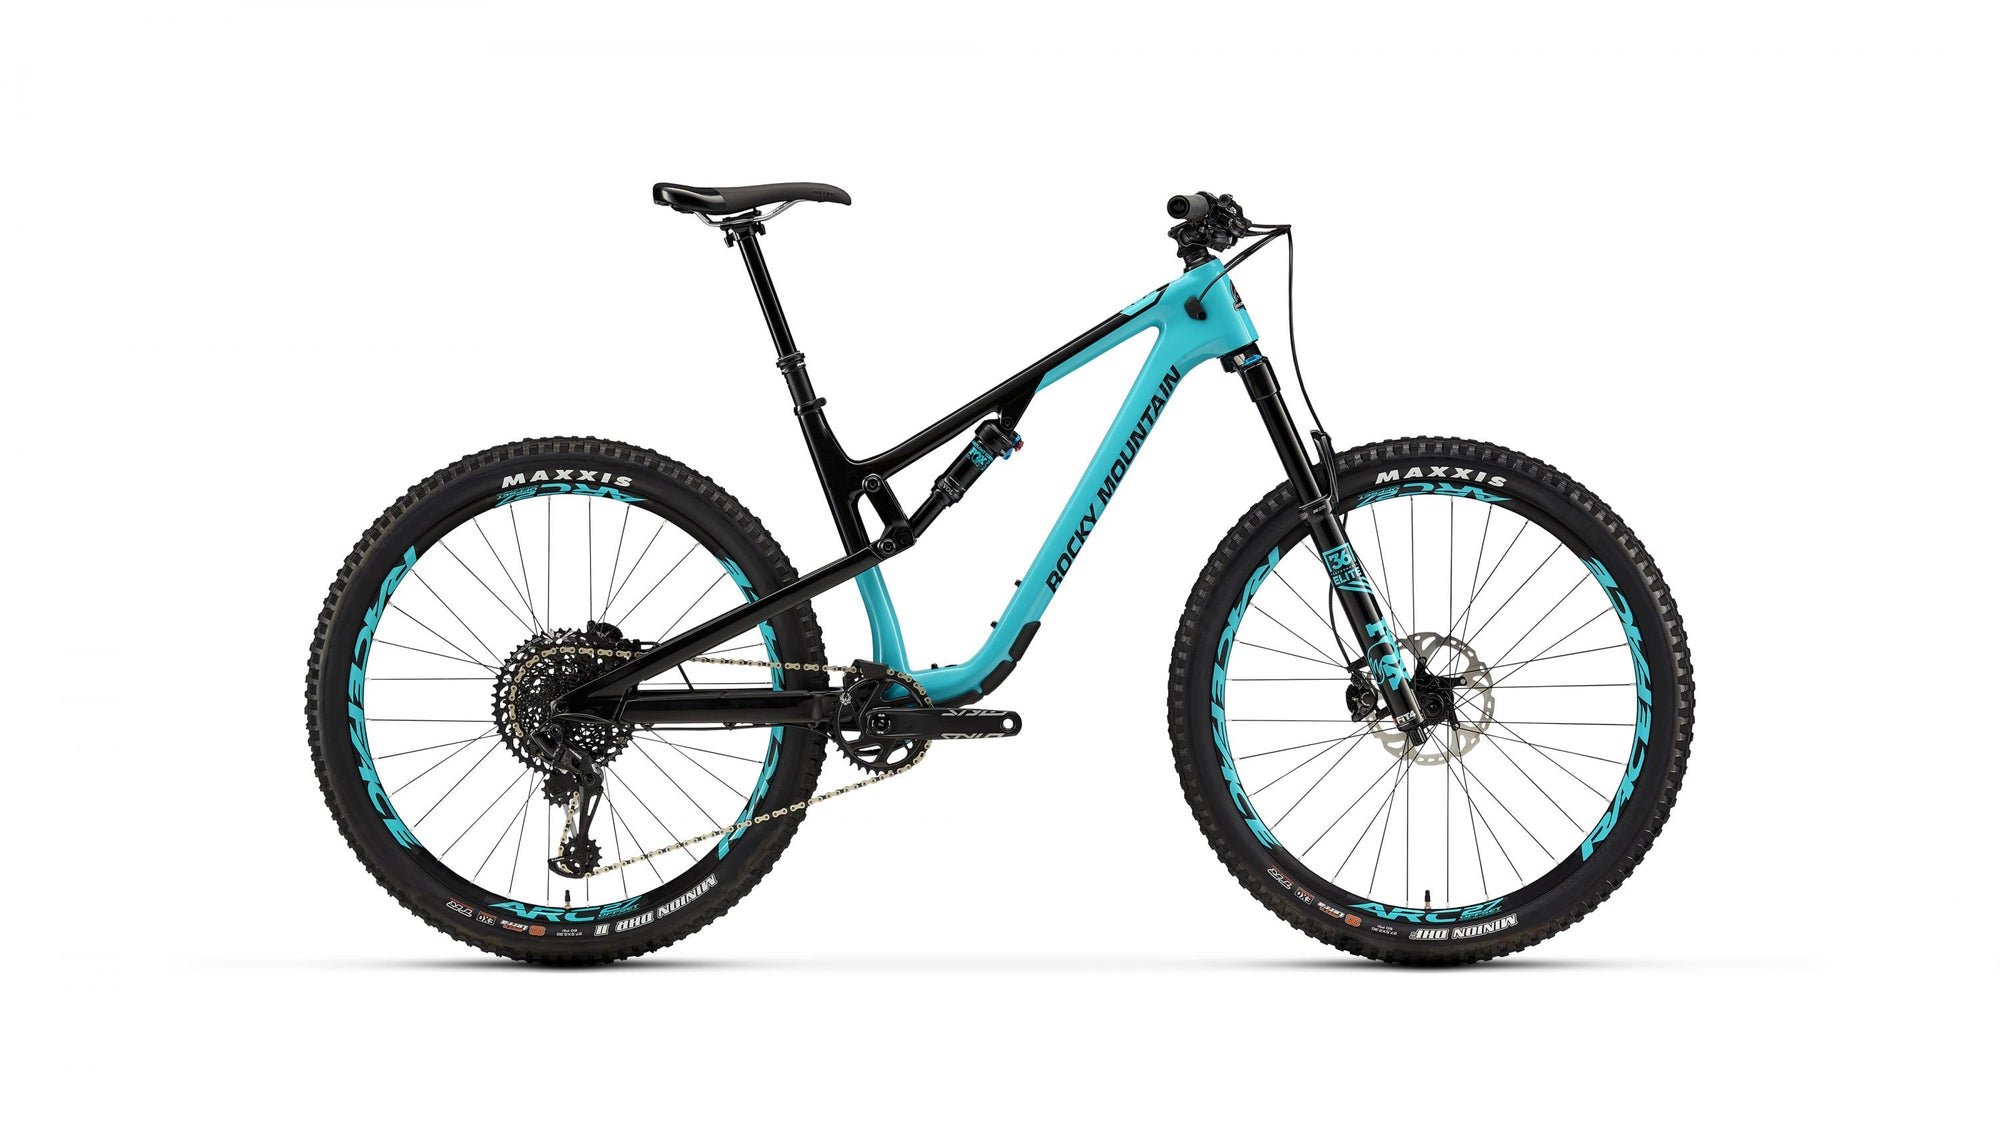 Rocky Mountain Thunderbolt Carbon 90 BC Edition 165 - 172.5cm (SM) - TUNE cycles